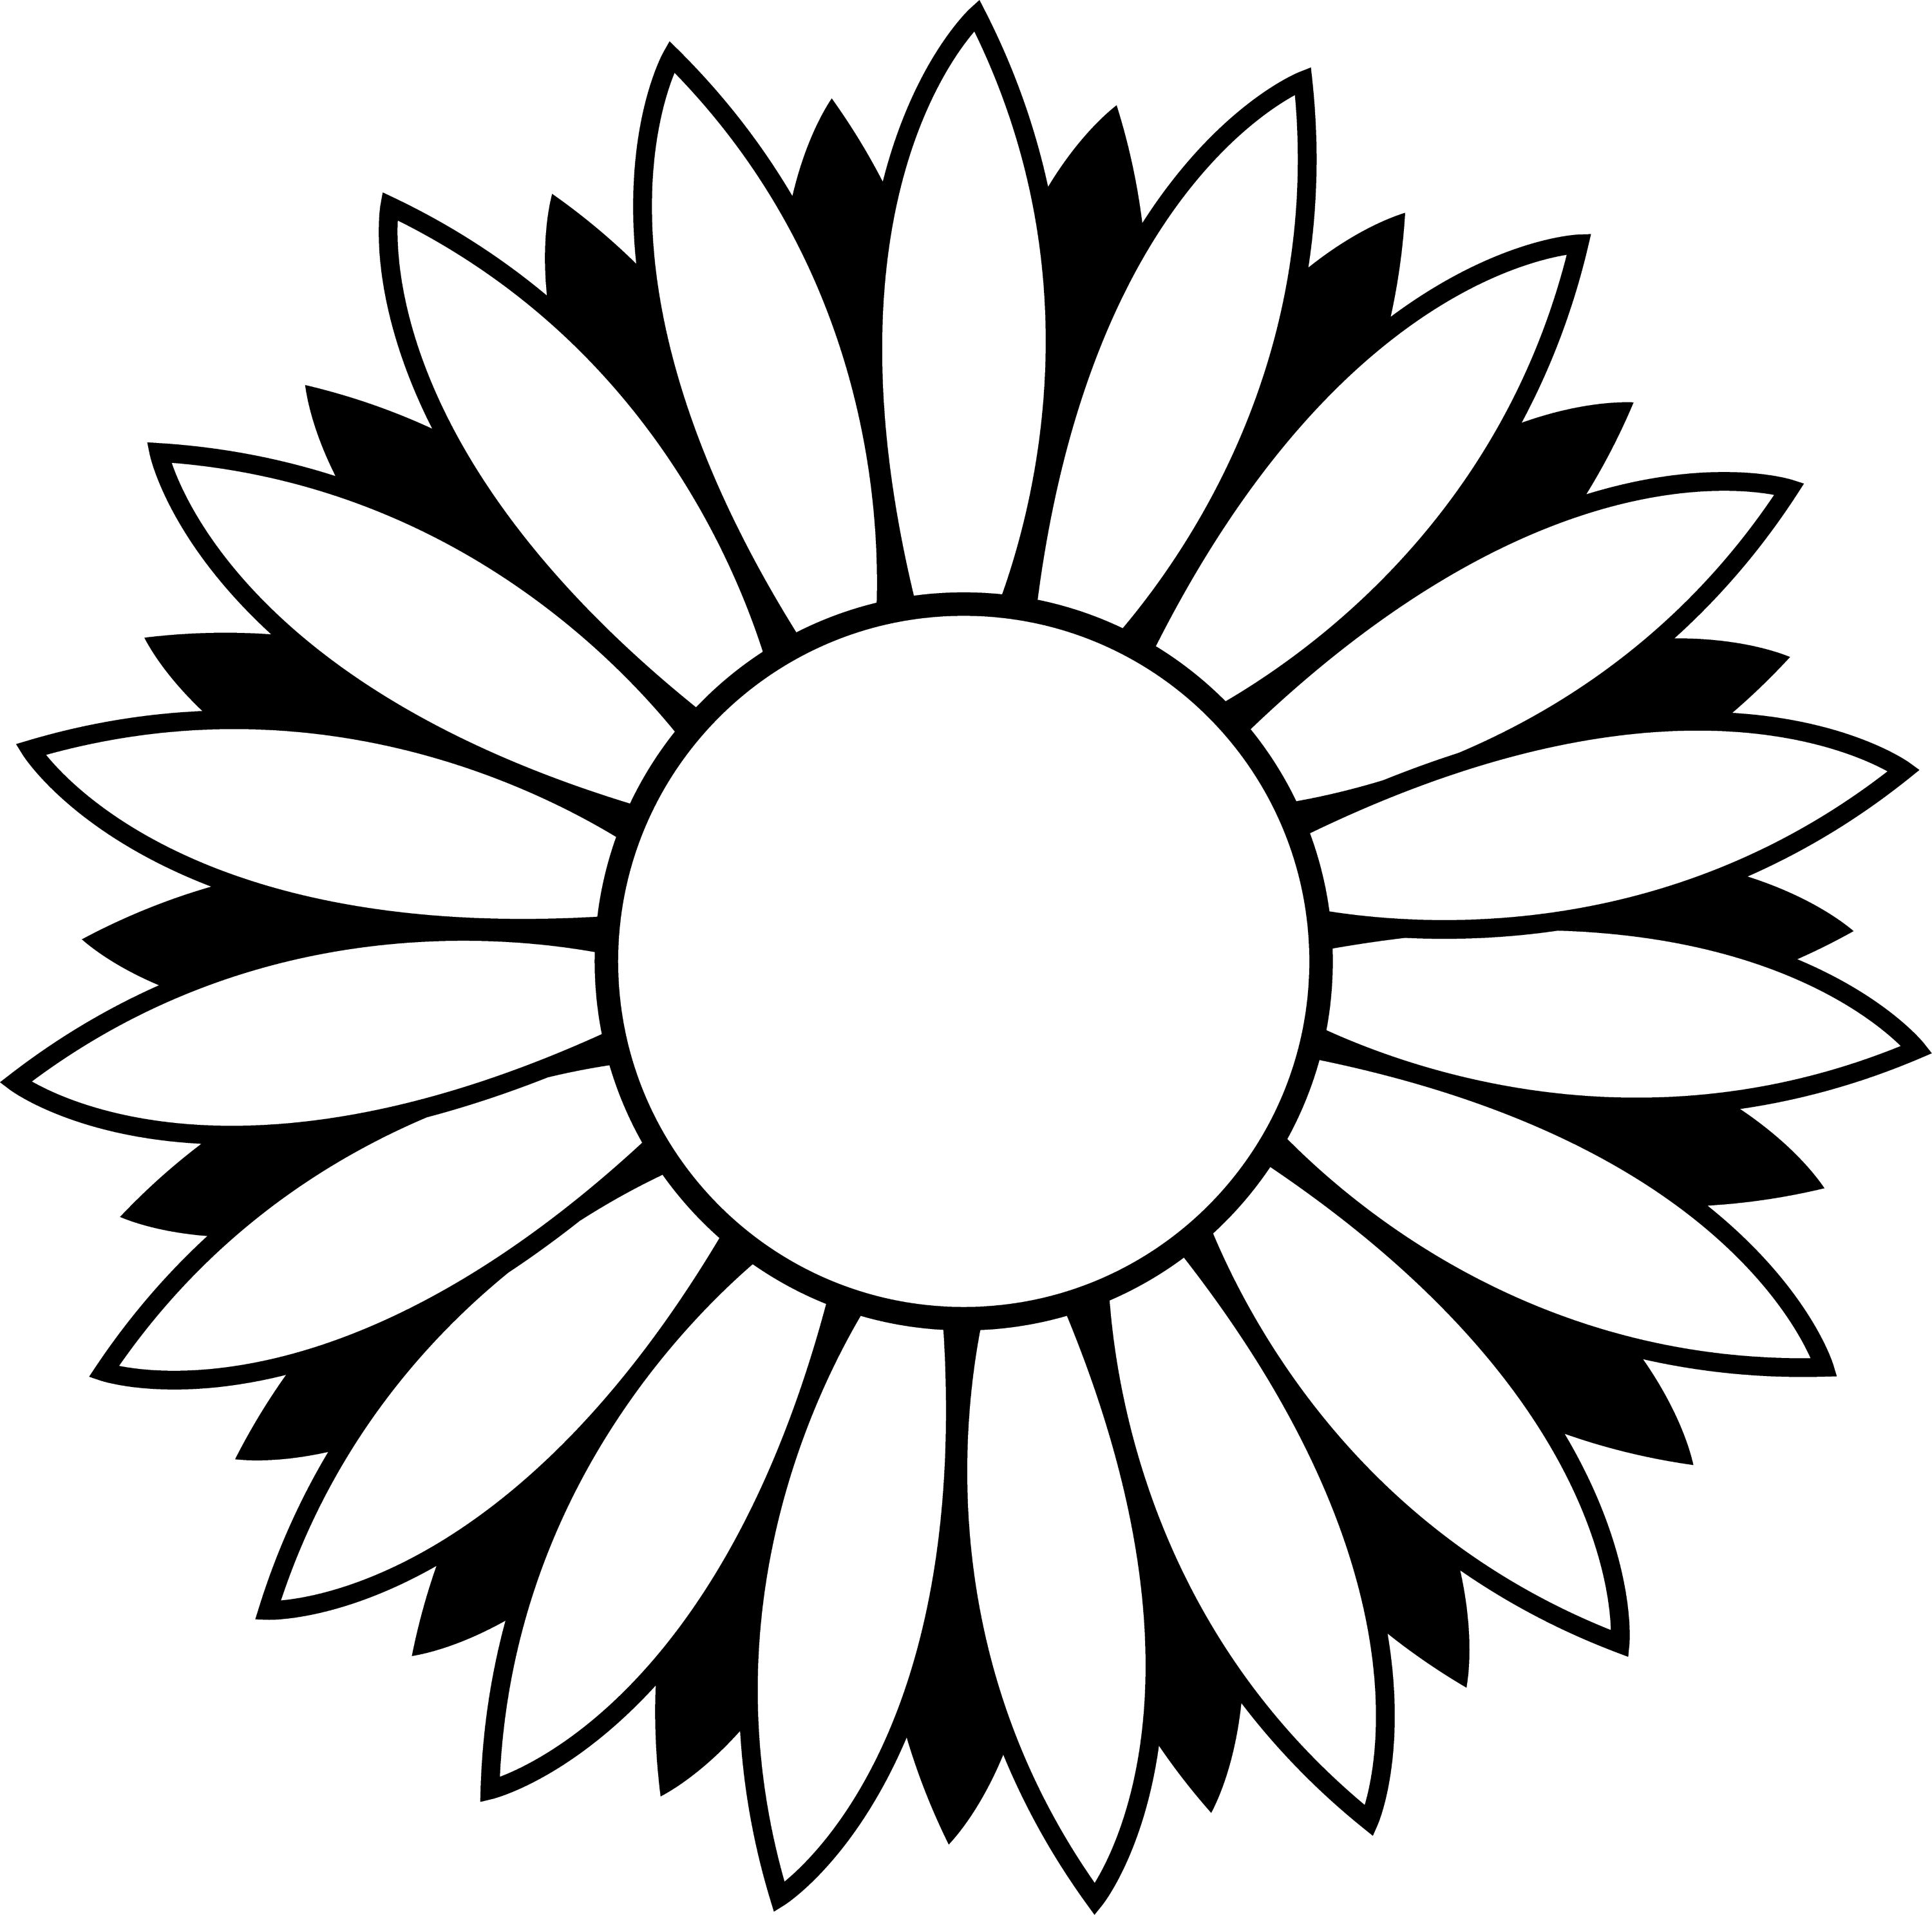 coloring flower clipart black and white 7 best images of printable black and white flowers free clipart and black coloring white flower